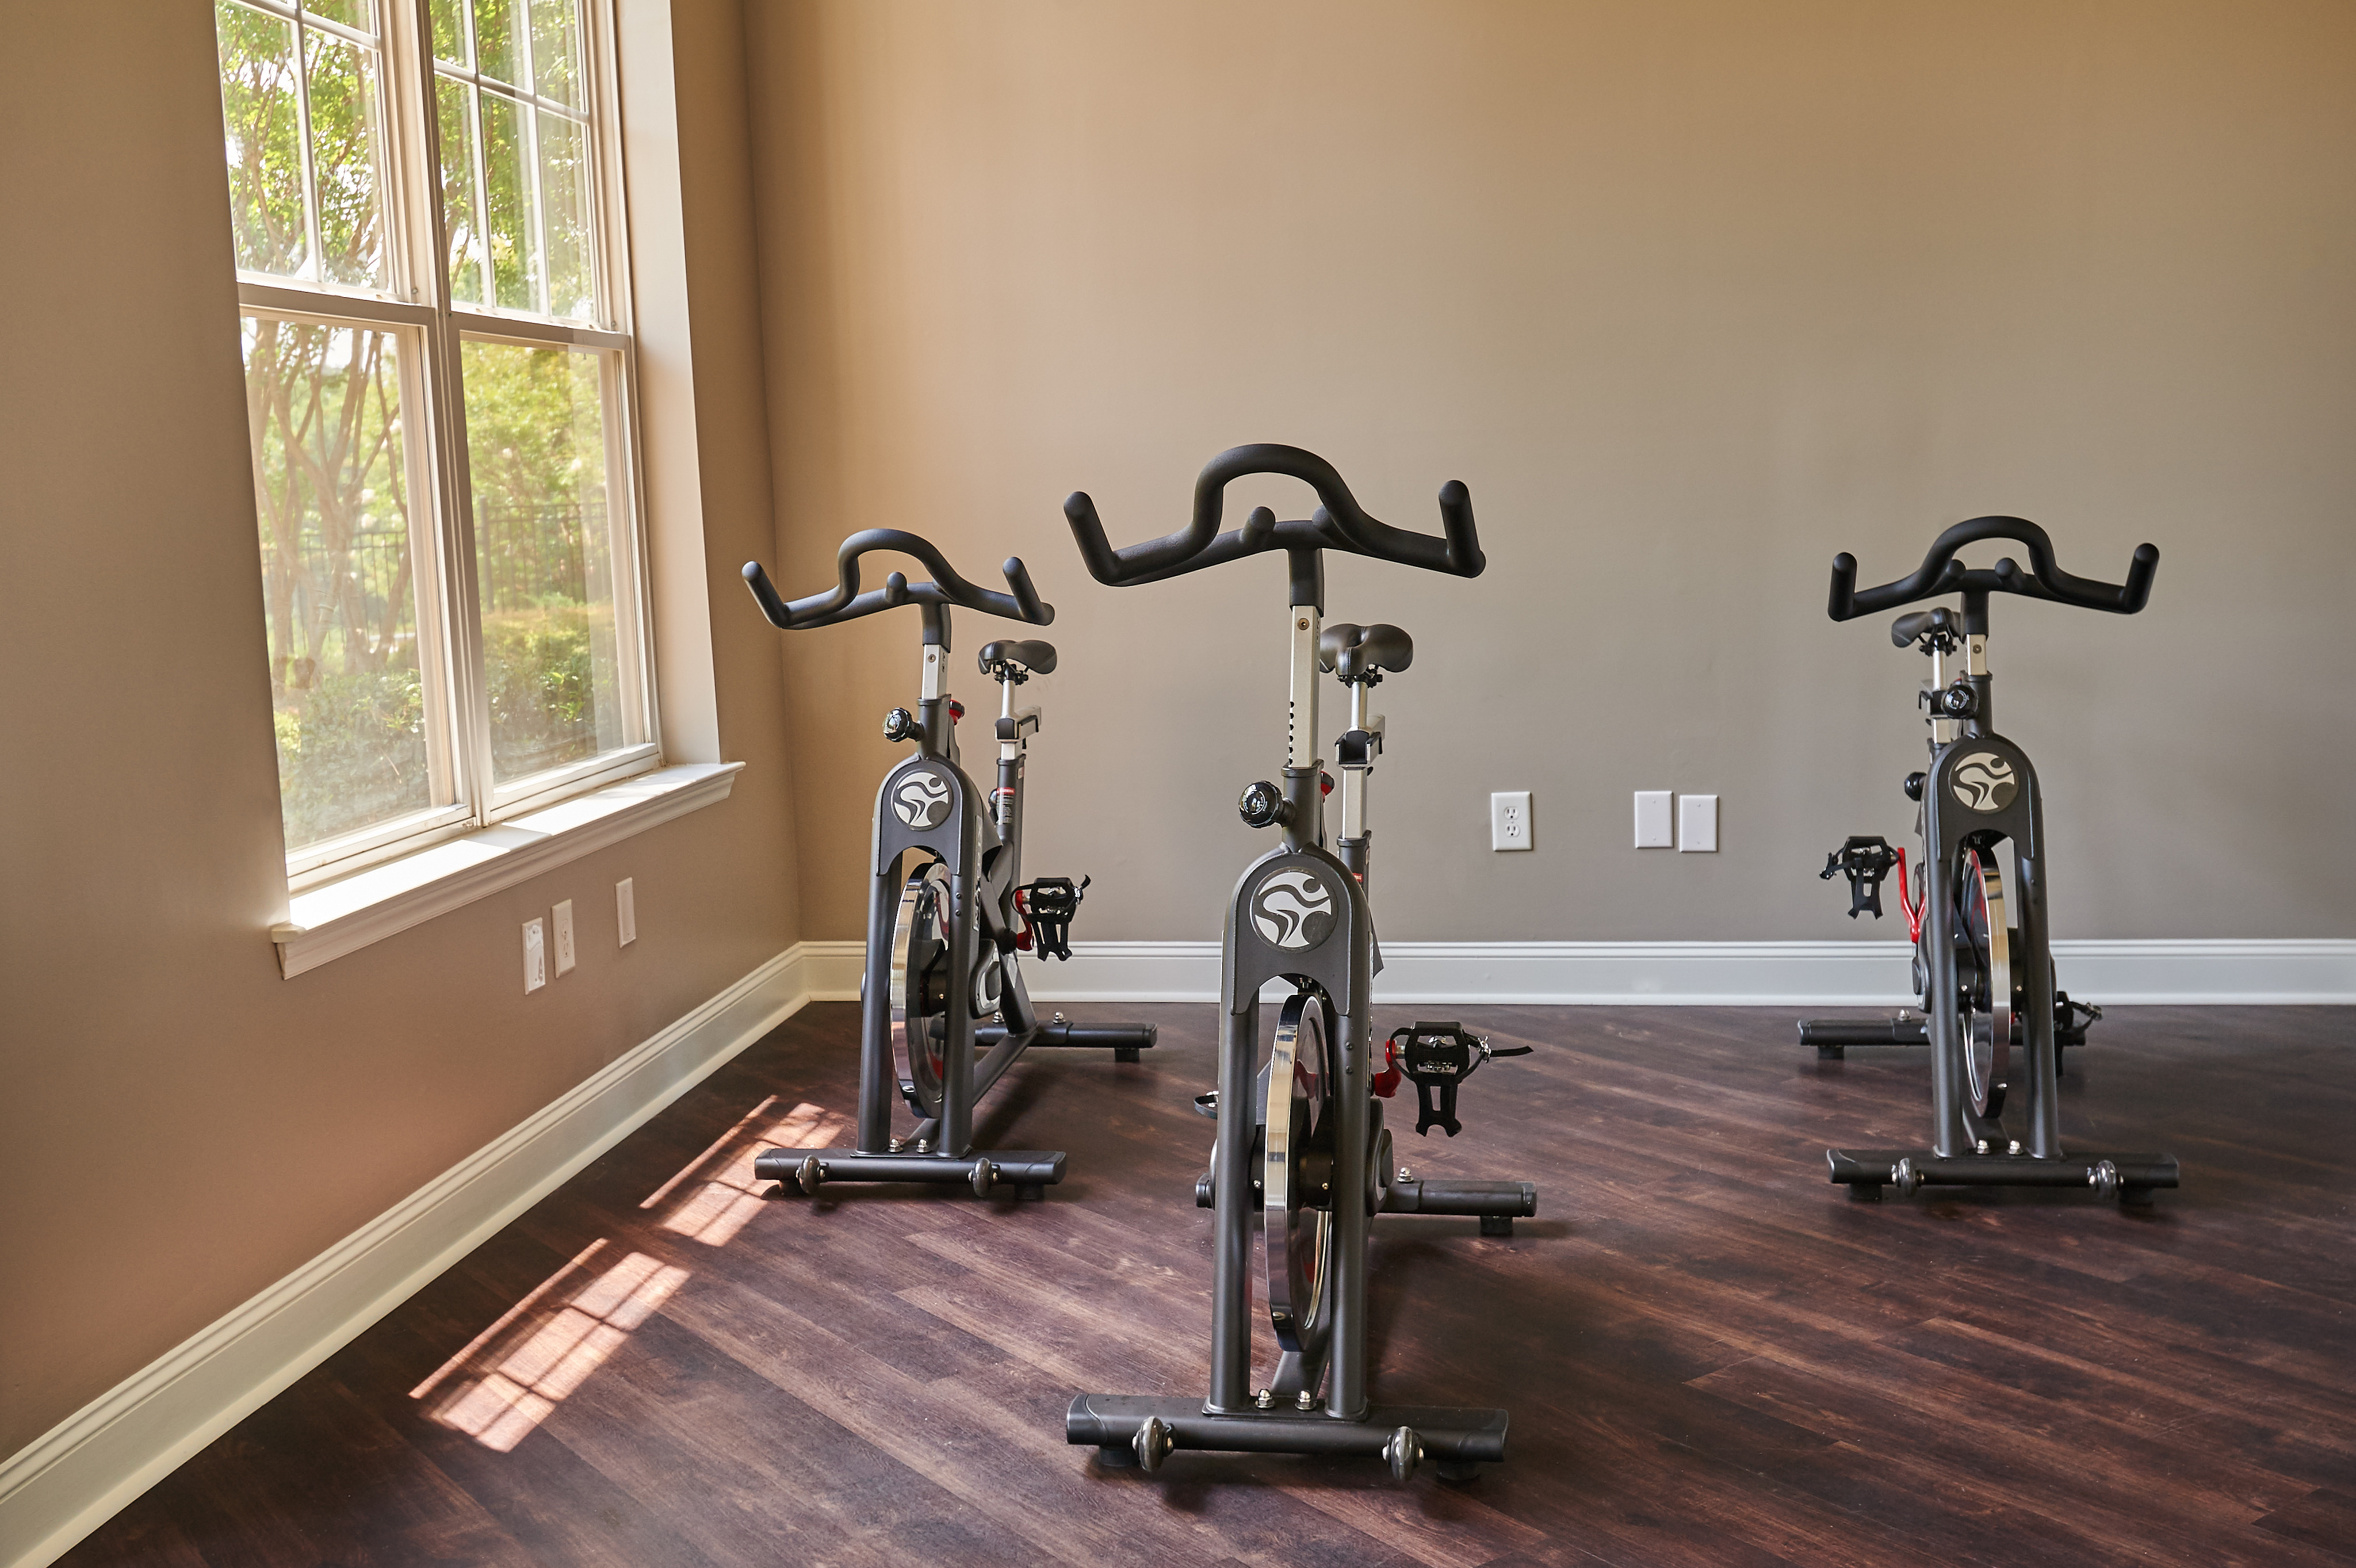 View of Spin and Yoga Studio, Showing Spin Bikes, Plank Flooring, and Window at Cottonwood Reserve Apartments